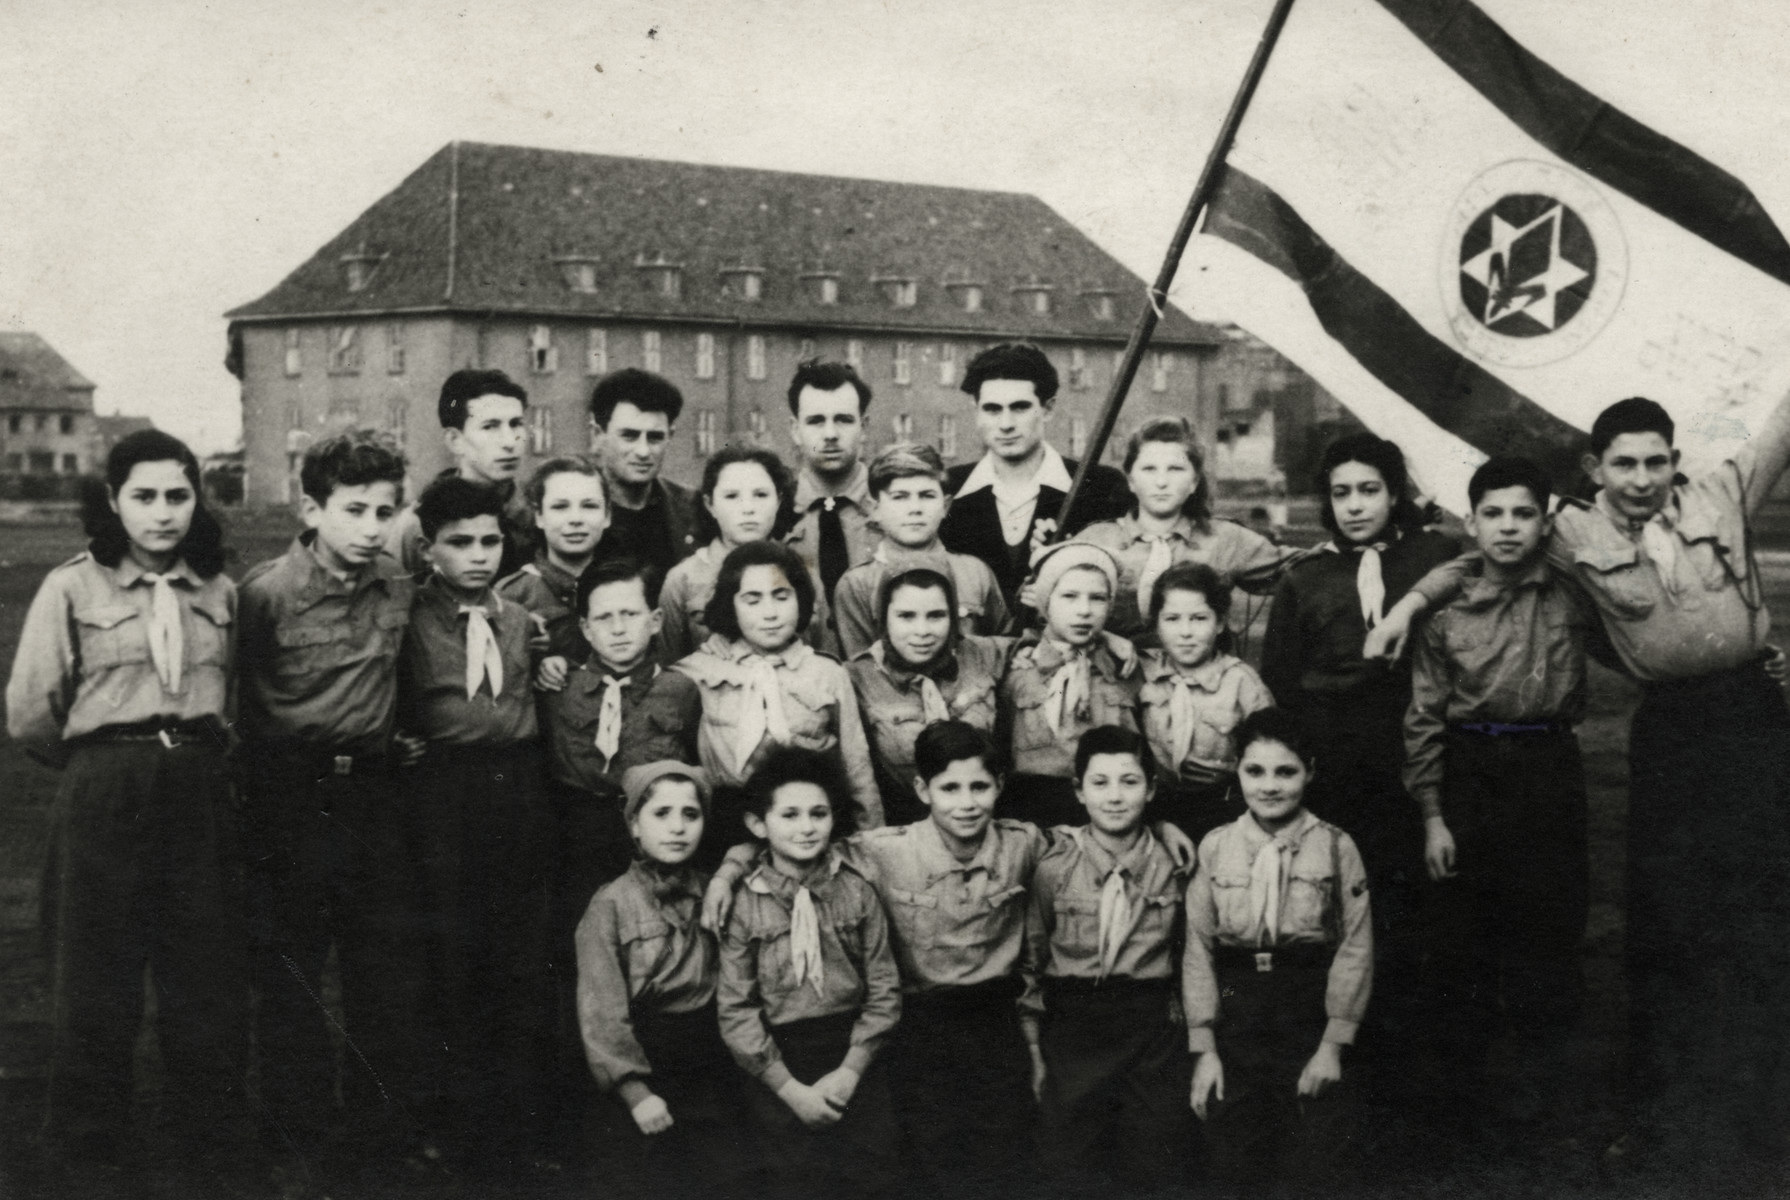 Group portrait of members of the Nitzanim group of the Zionist youth movement, Hanoar Hatzioni.  All of the children had been on the Exodus and had been sent back to Europe.  Ziomek Hammer (Shlomo HaMeiri) is pictured in the third row, fifth from the right.